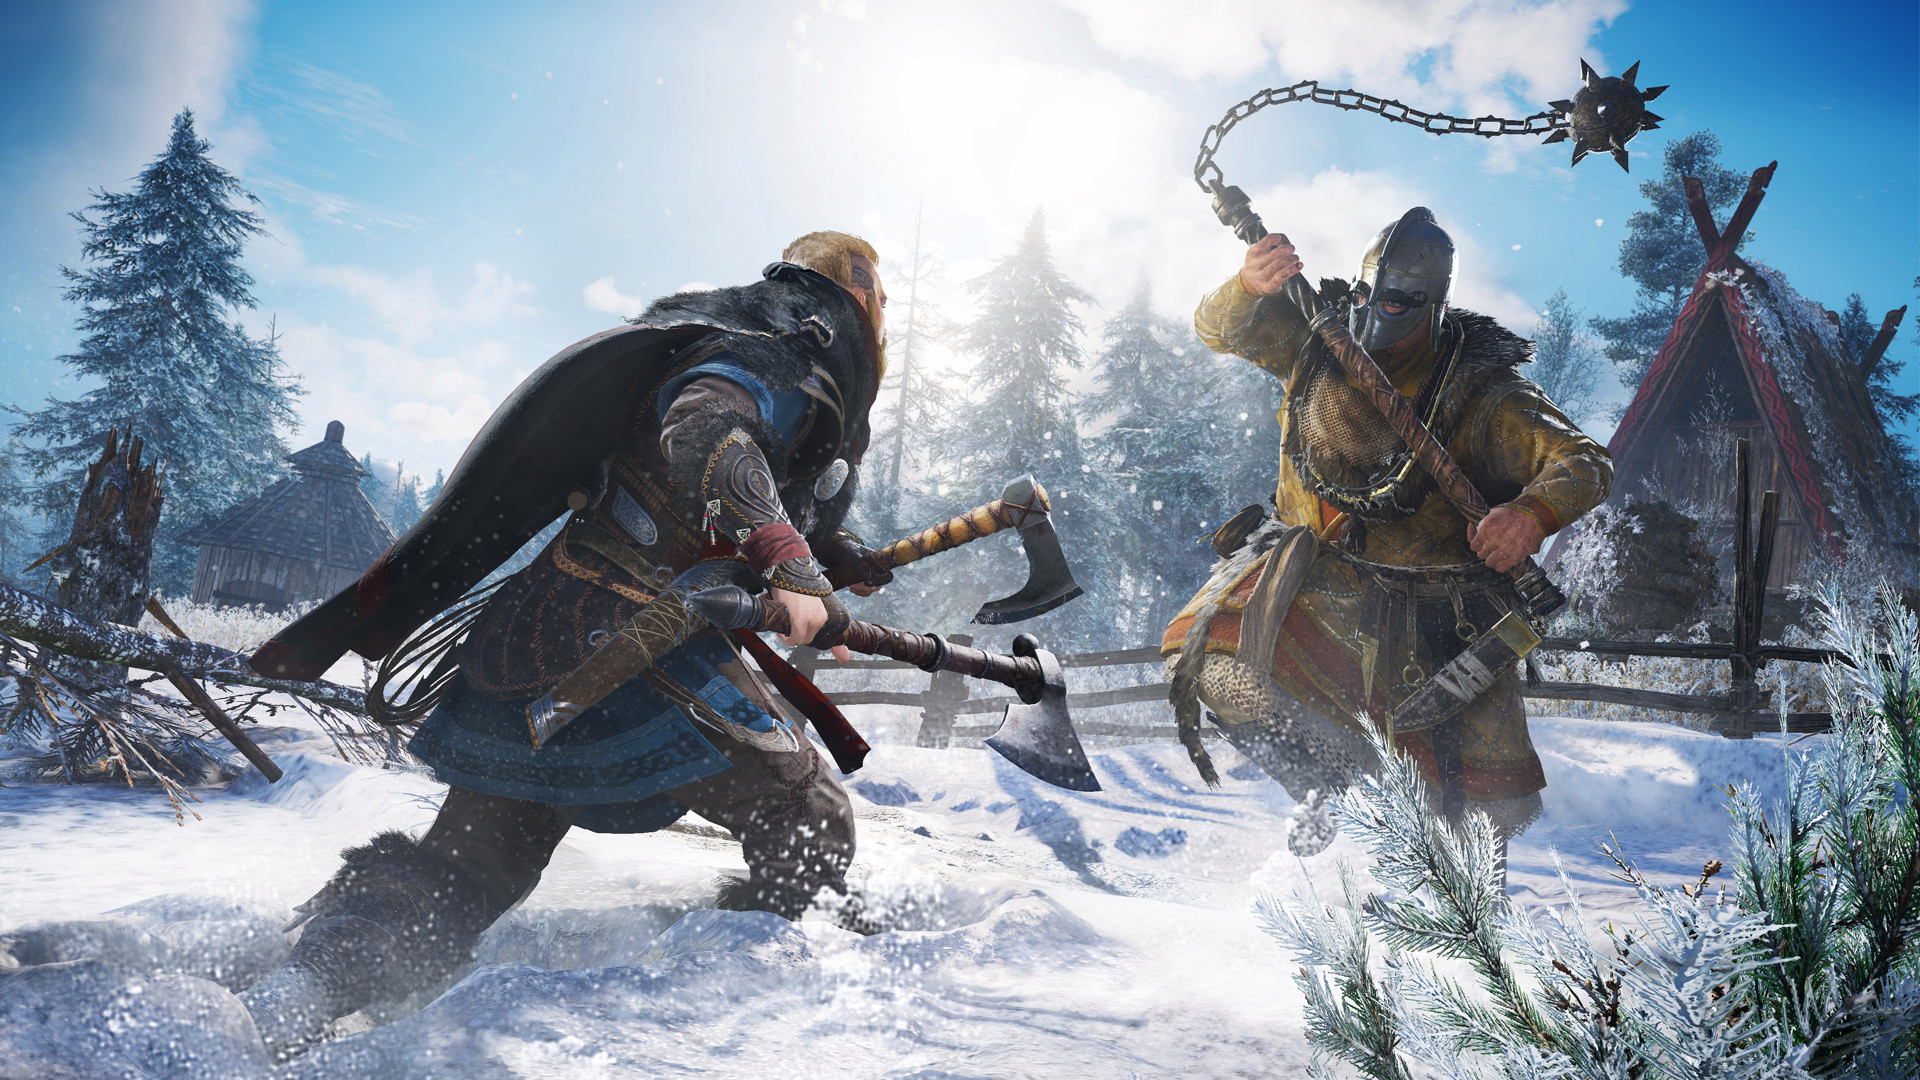 Assassin's Creed Valhalla Update 1.1.0 Notes, Will Be Released For PS4, PS5 Later Today